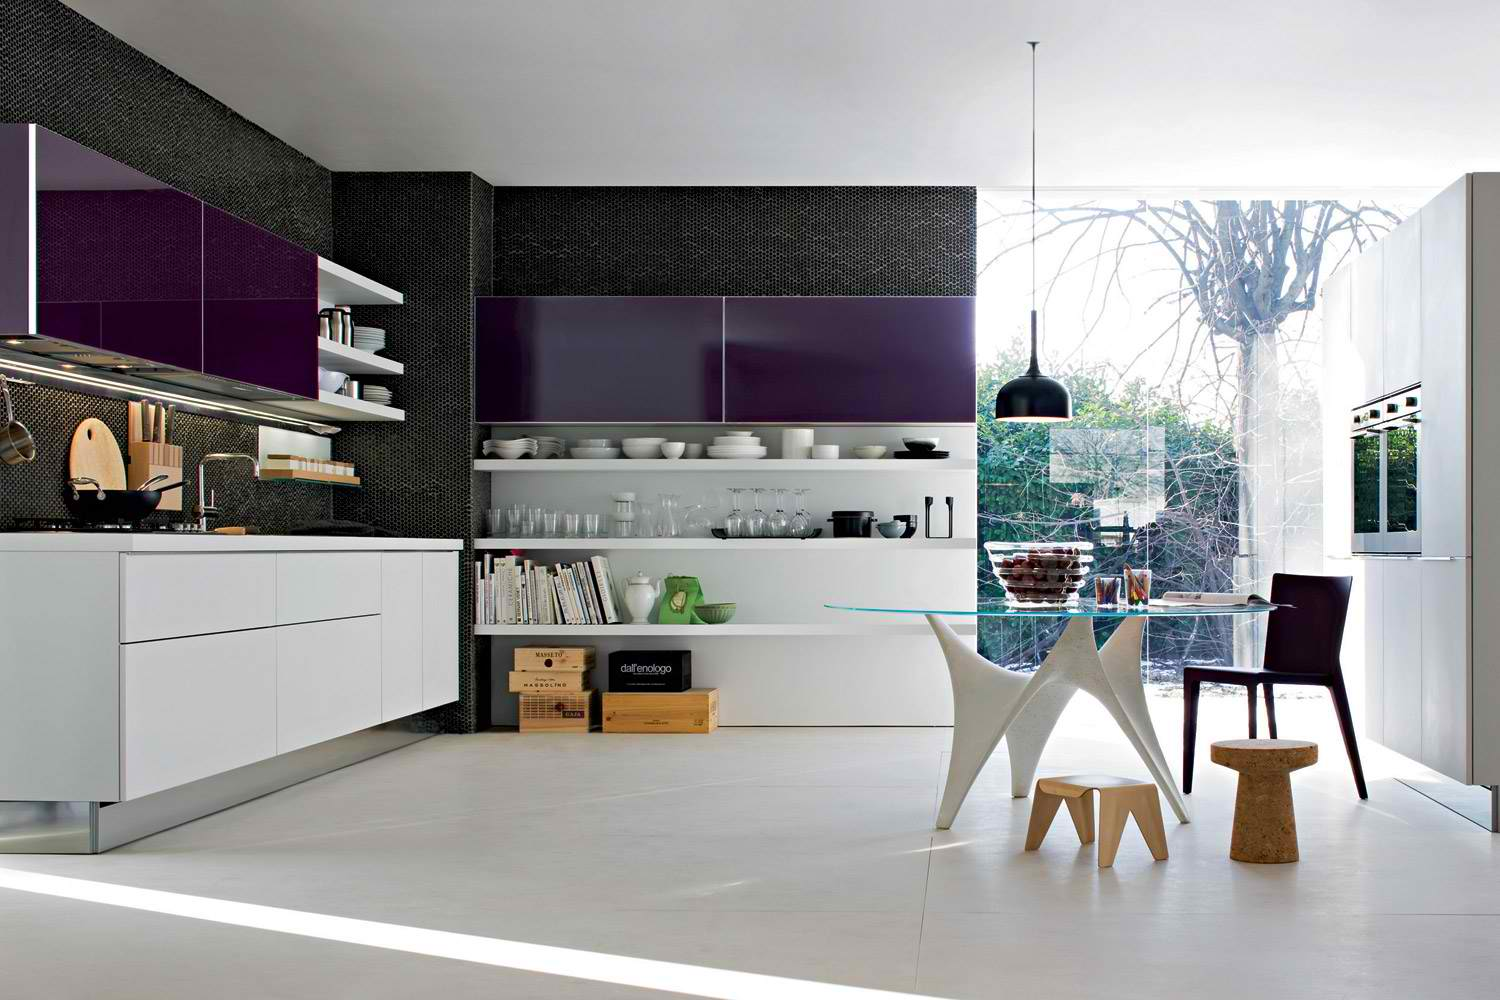 http://decoholic.org/wp-content/uploads/2012/07/Dada-purple-Kitchen-Design1.jpg